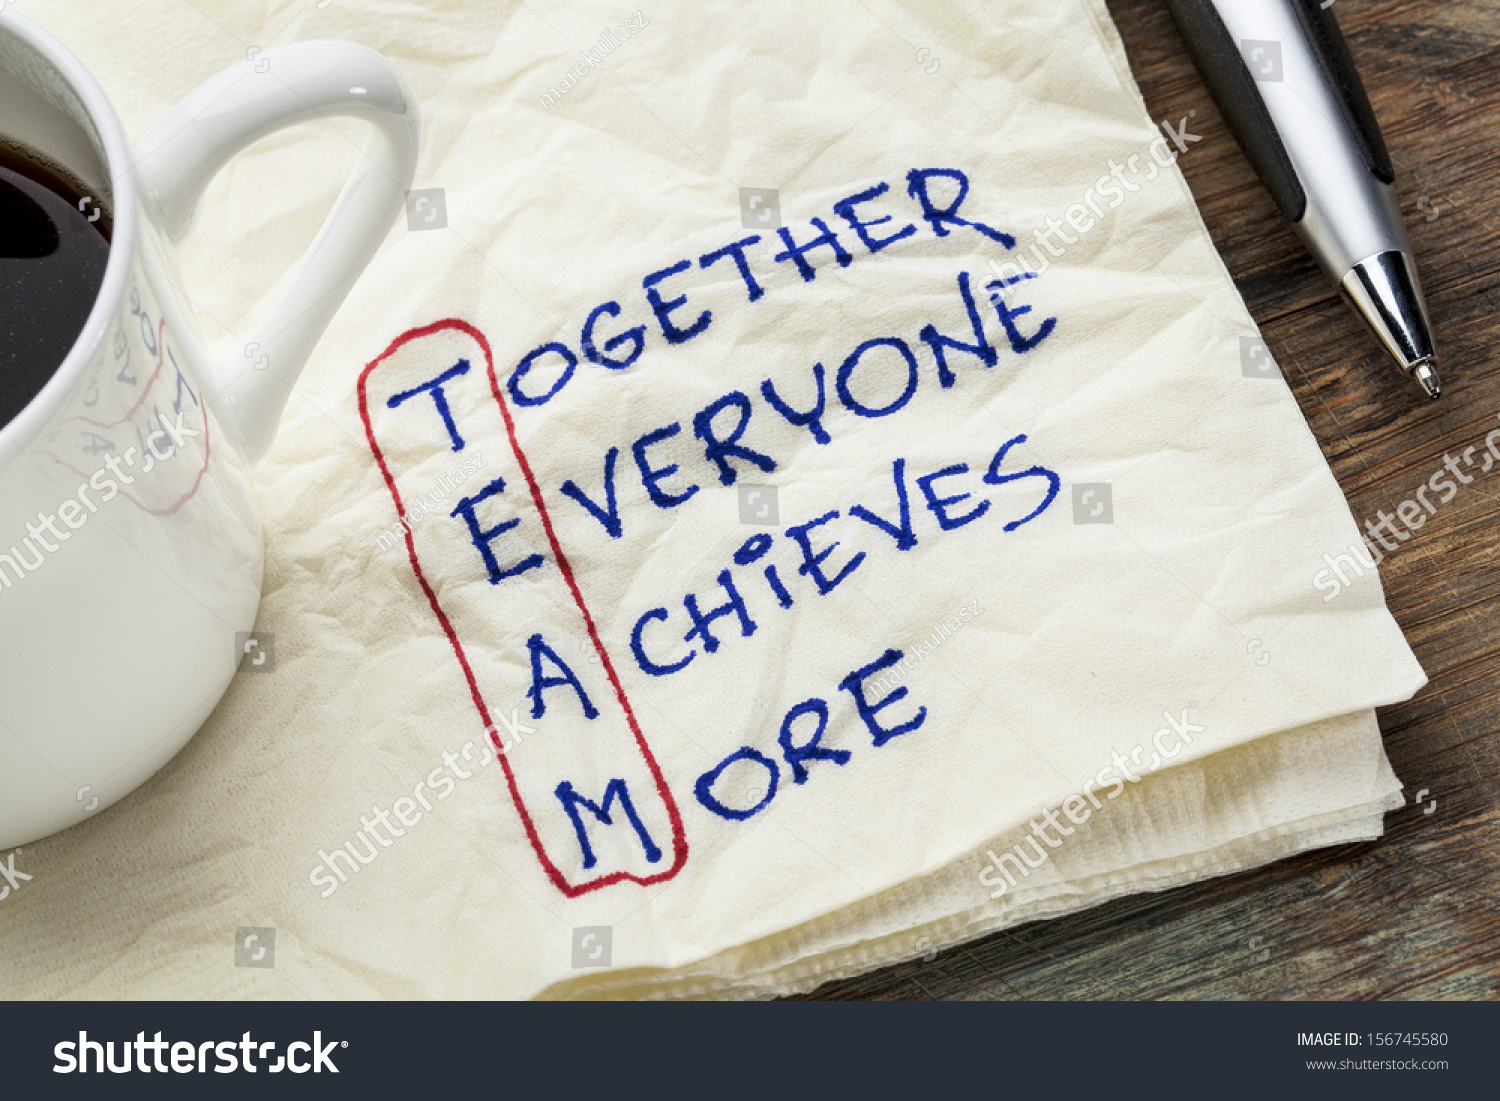 team acronym together everyone achieves more stock photo  team acronym together everyone achieves more teamwork motivation concept a napkin doodle